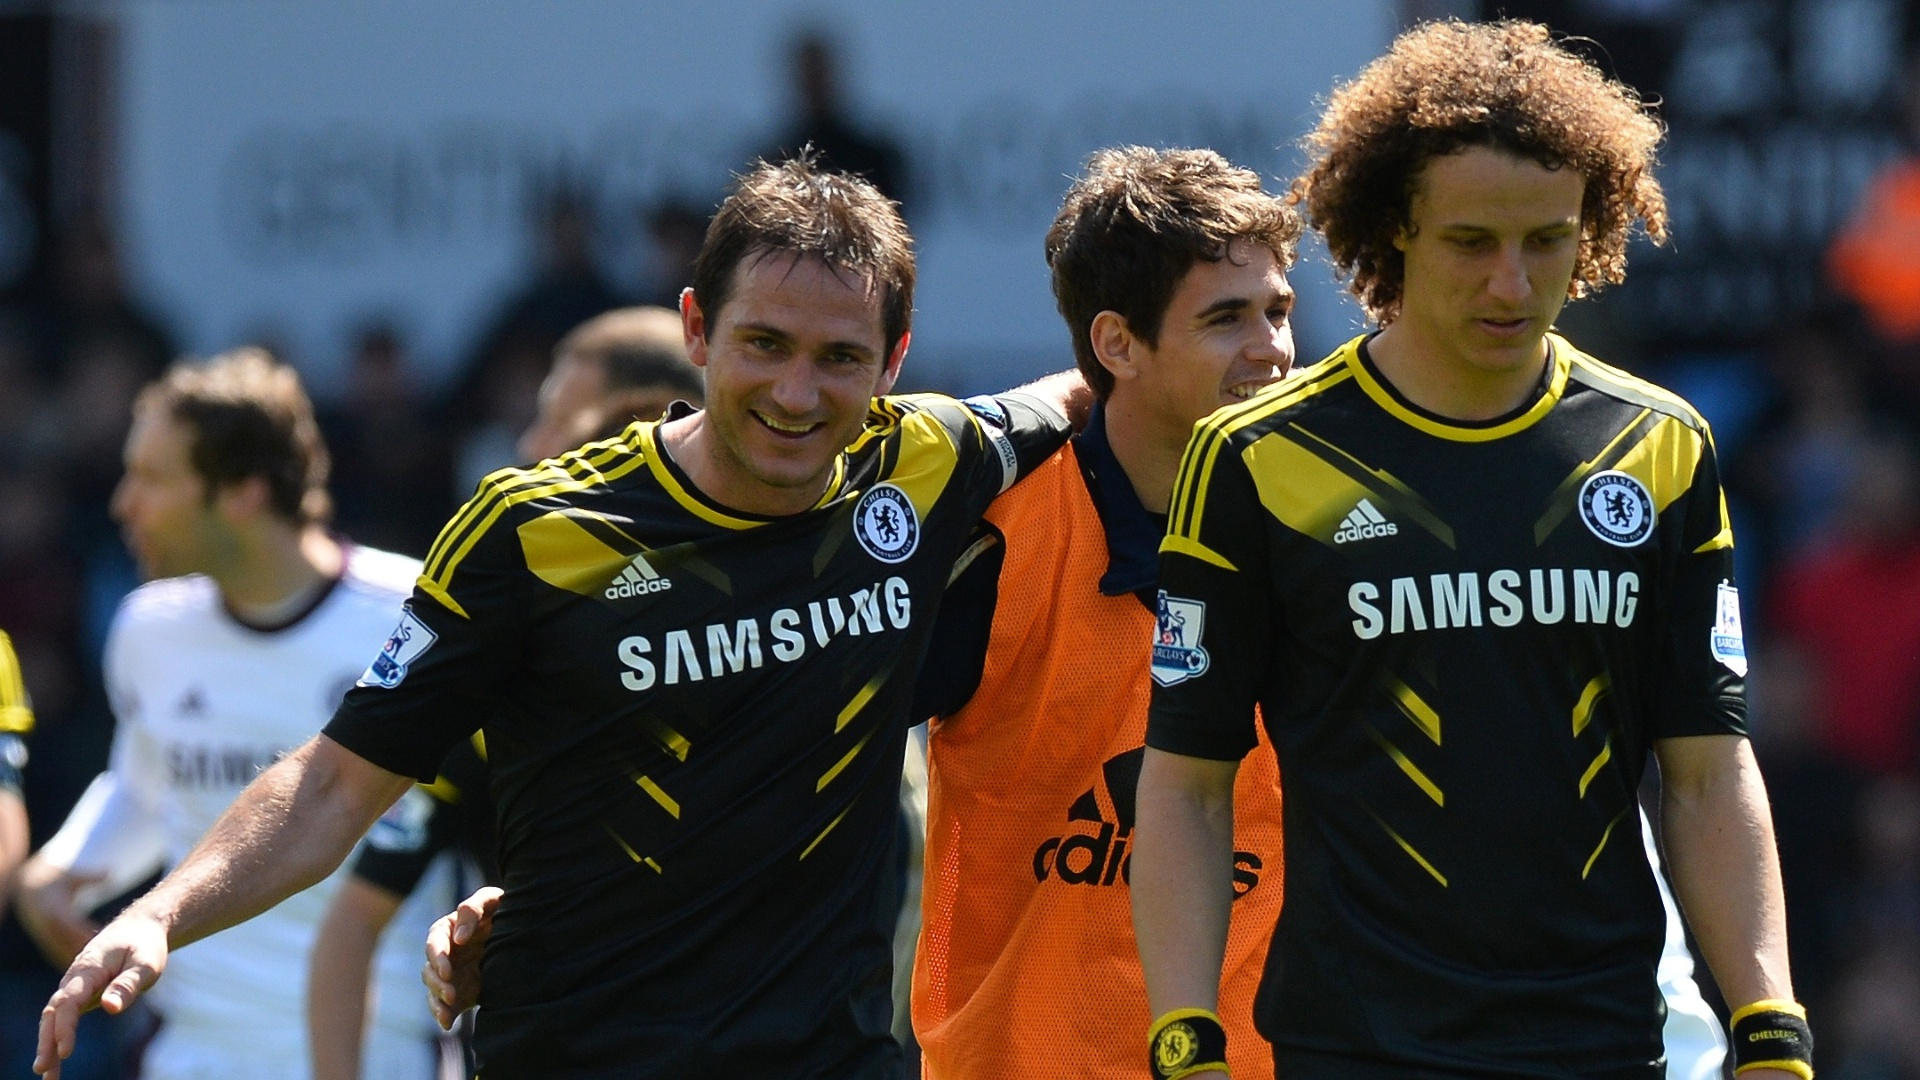 Aps marcar dois gols e se tornar maior artilheiro da histria do Chelsea, Lampard (esquerda) conversa com os brasileiros Oscar (atrs) e David Luiz (frente)